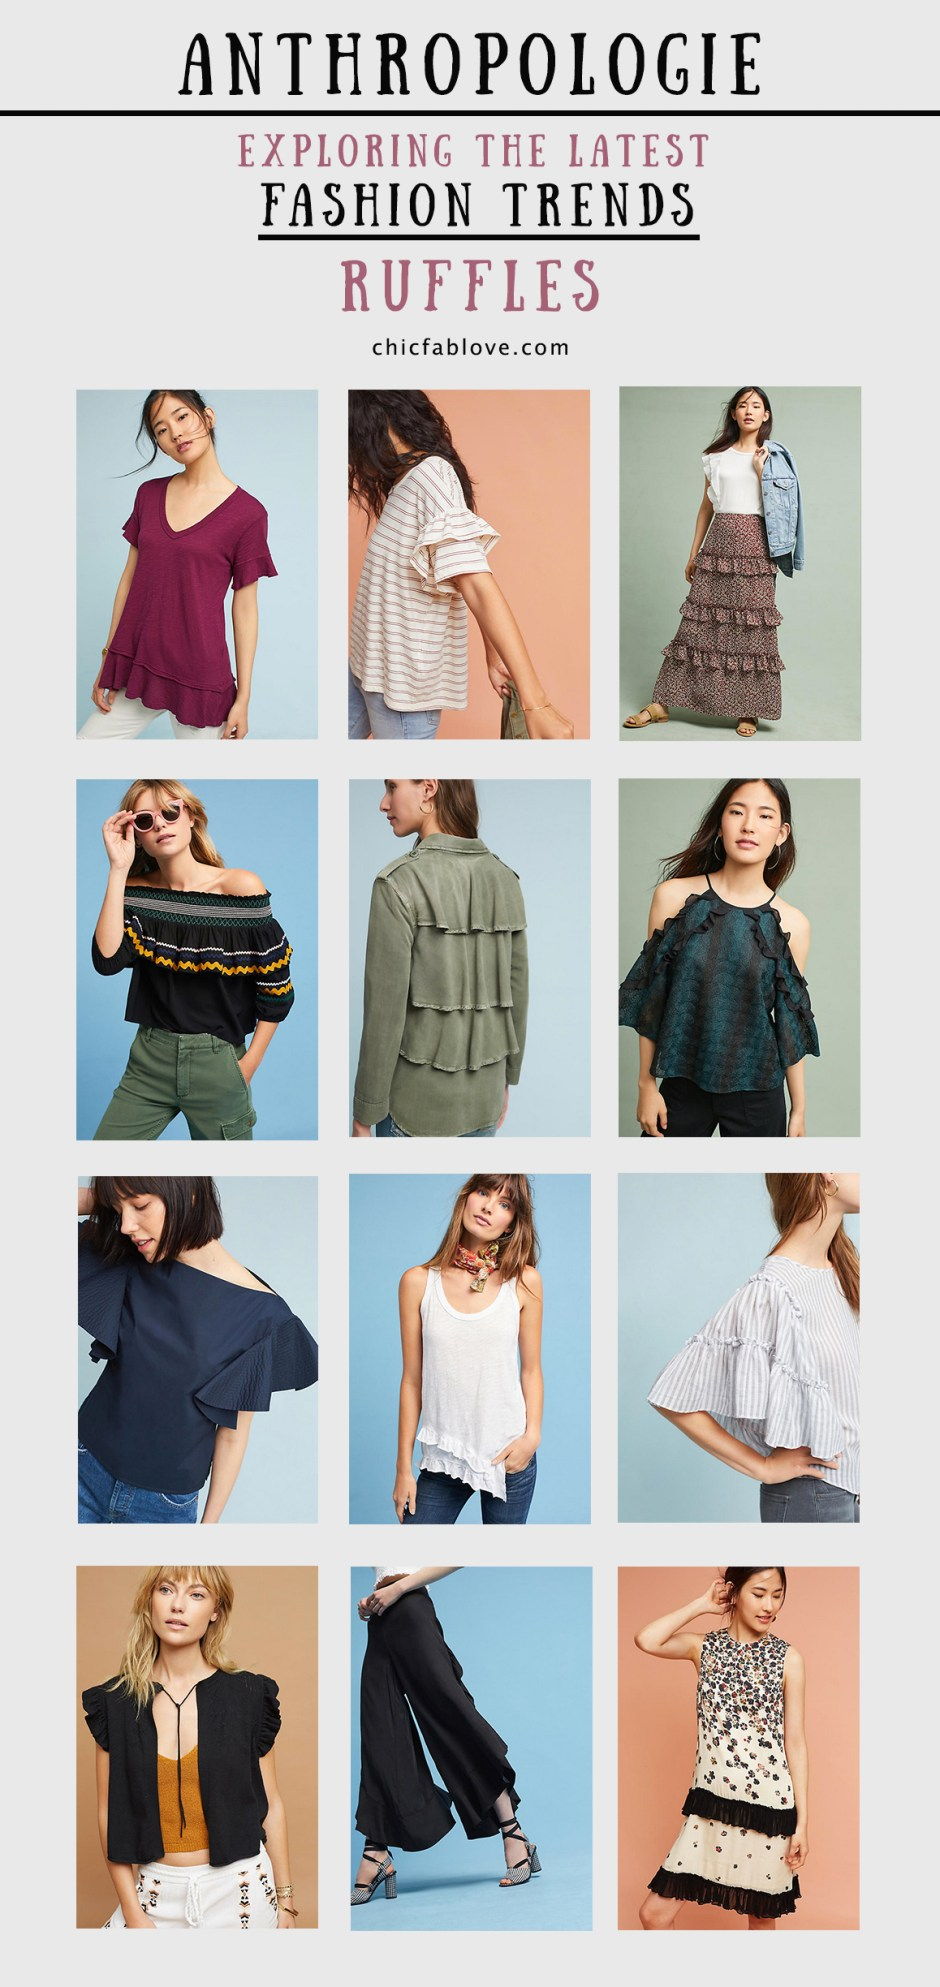 Anthropologie Exploring Fashion Trends for August